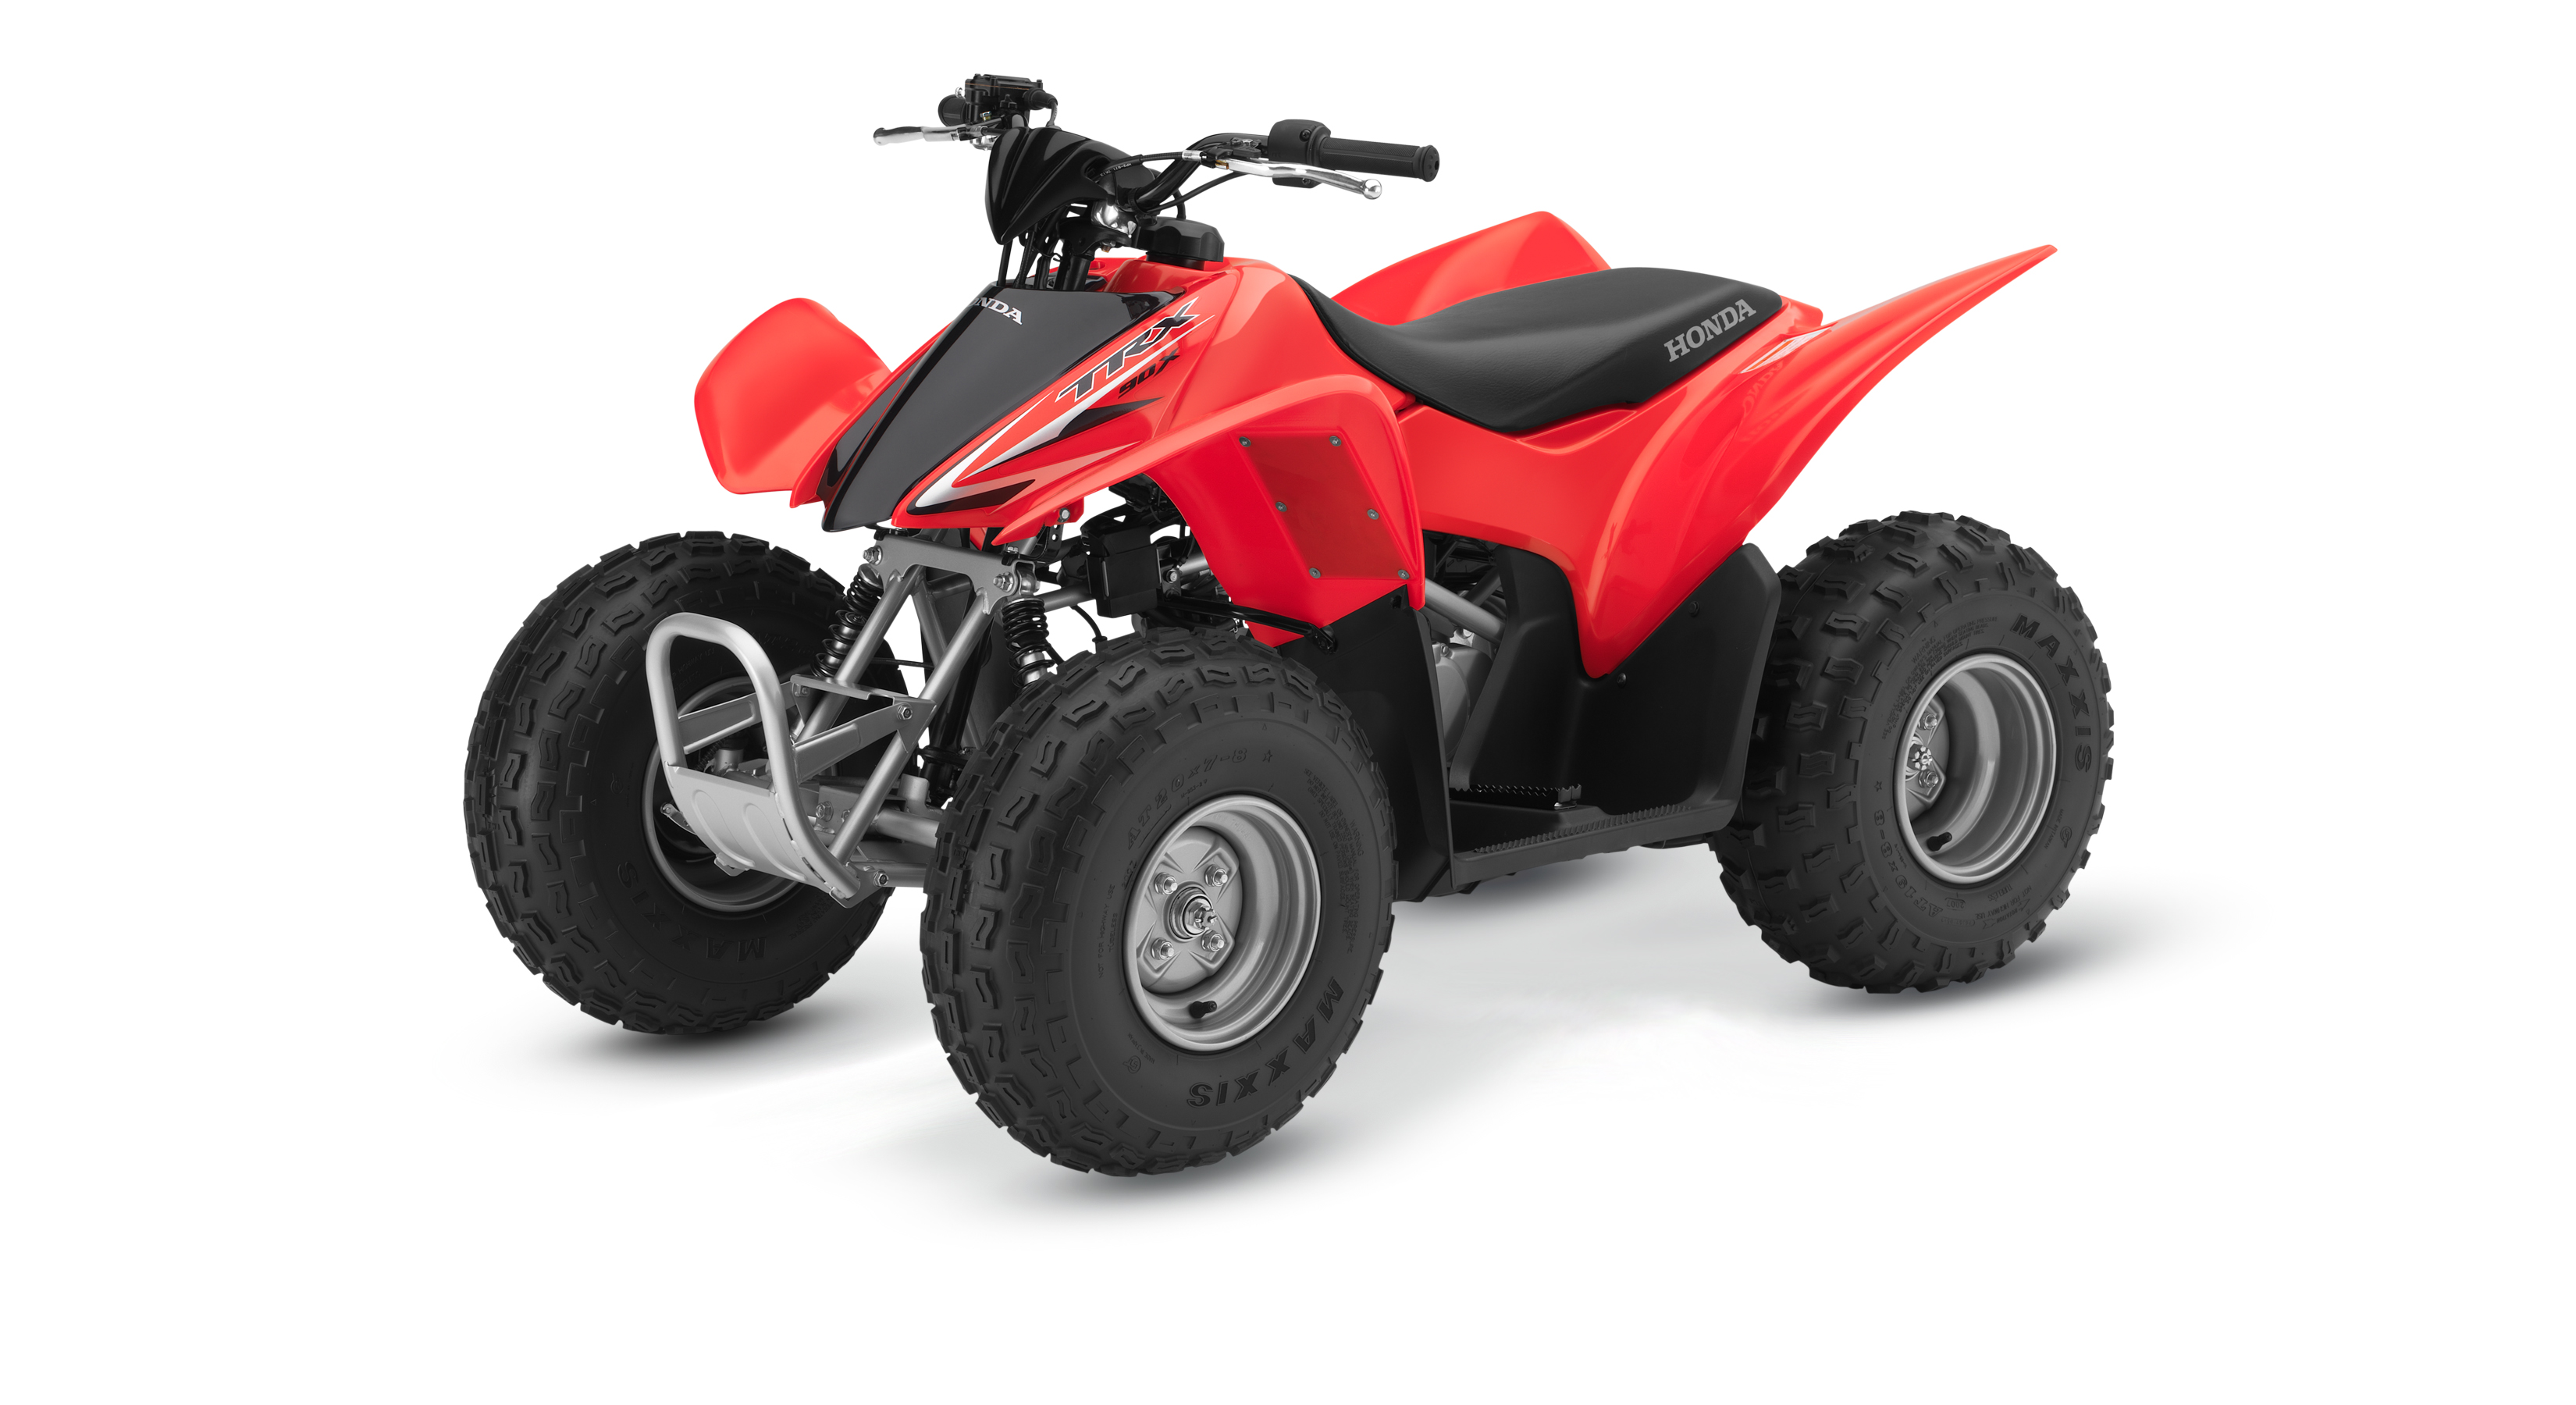 s about dealer is motorcycle dealers shop island the honda atv north